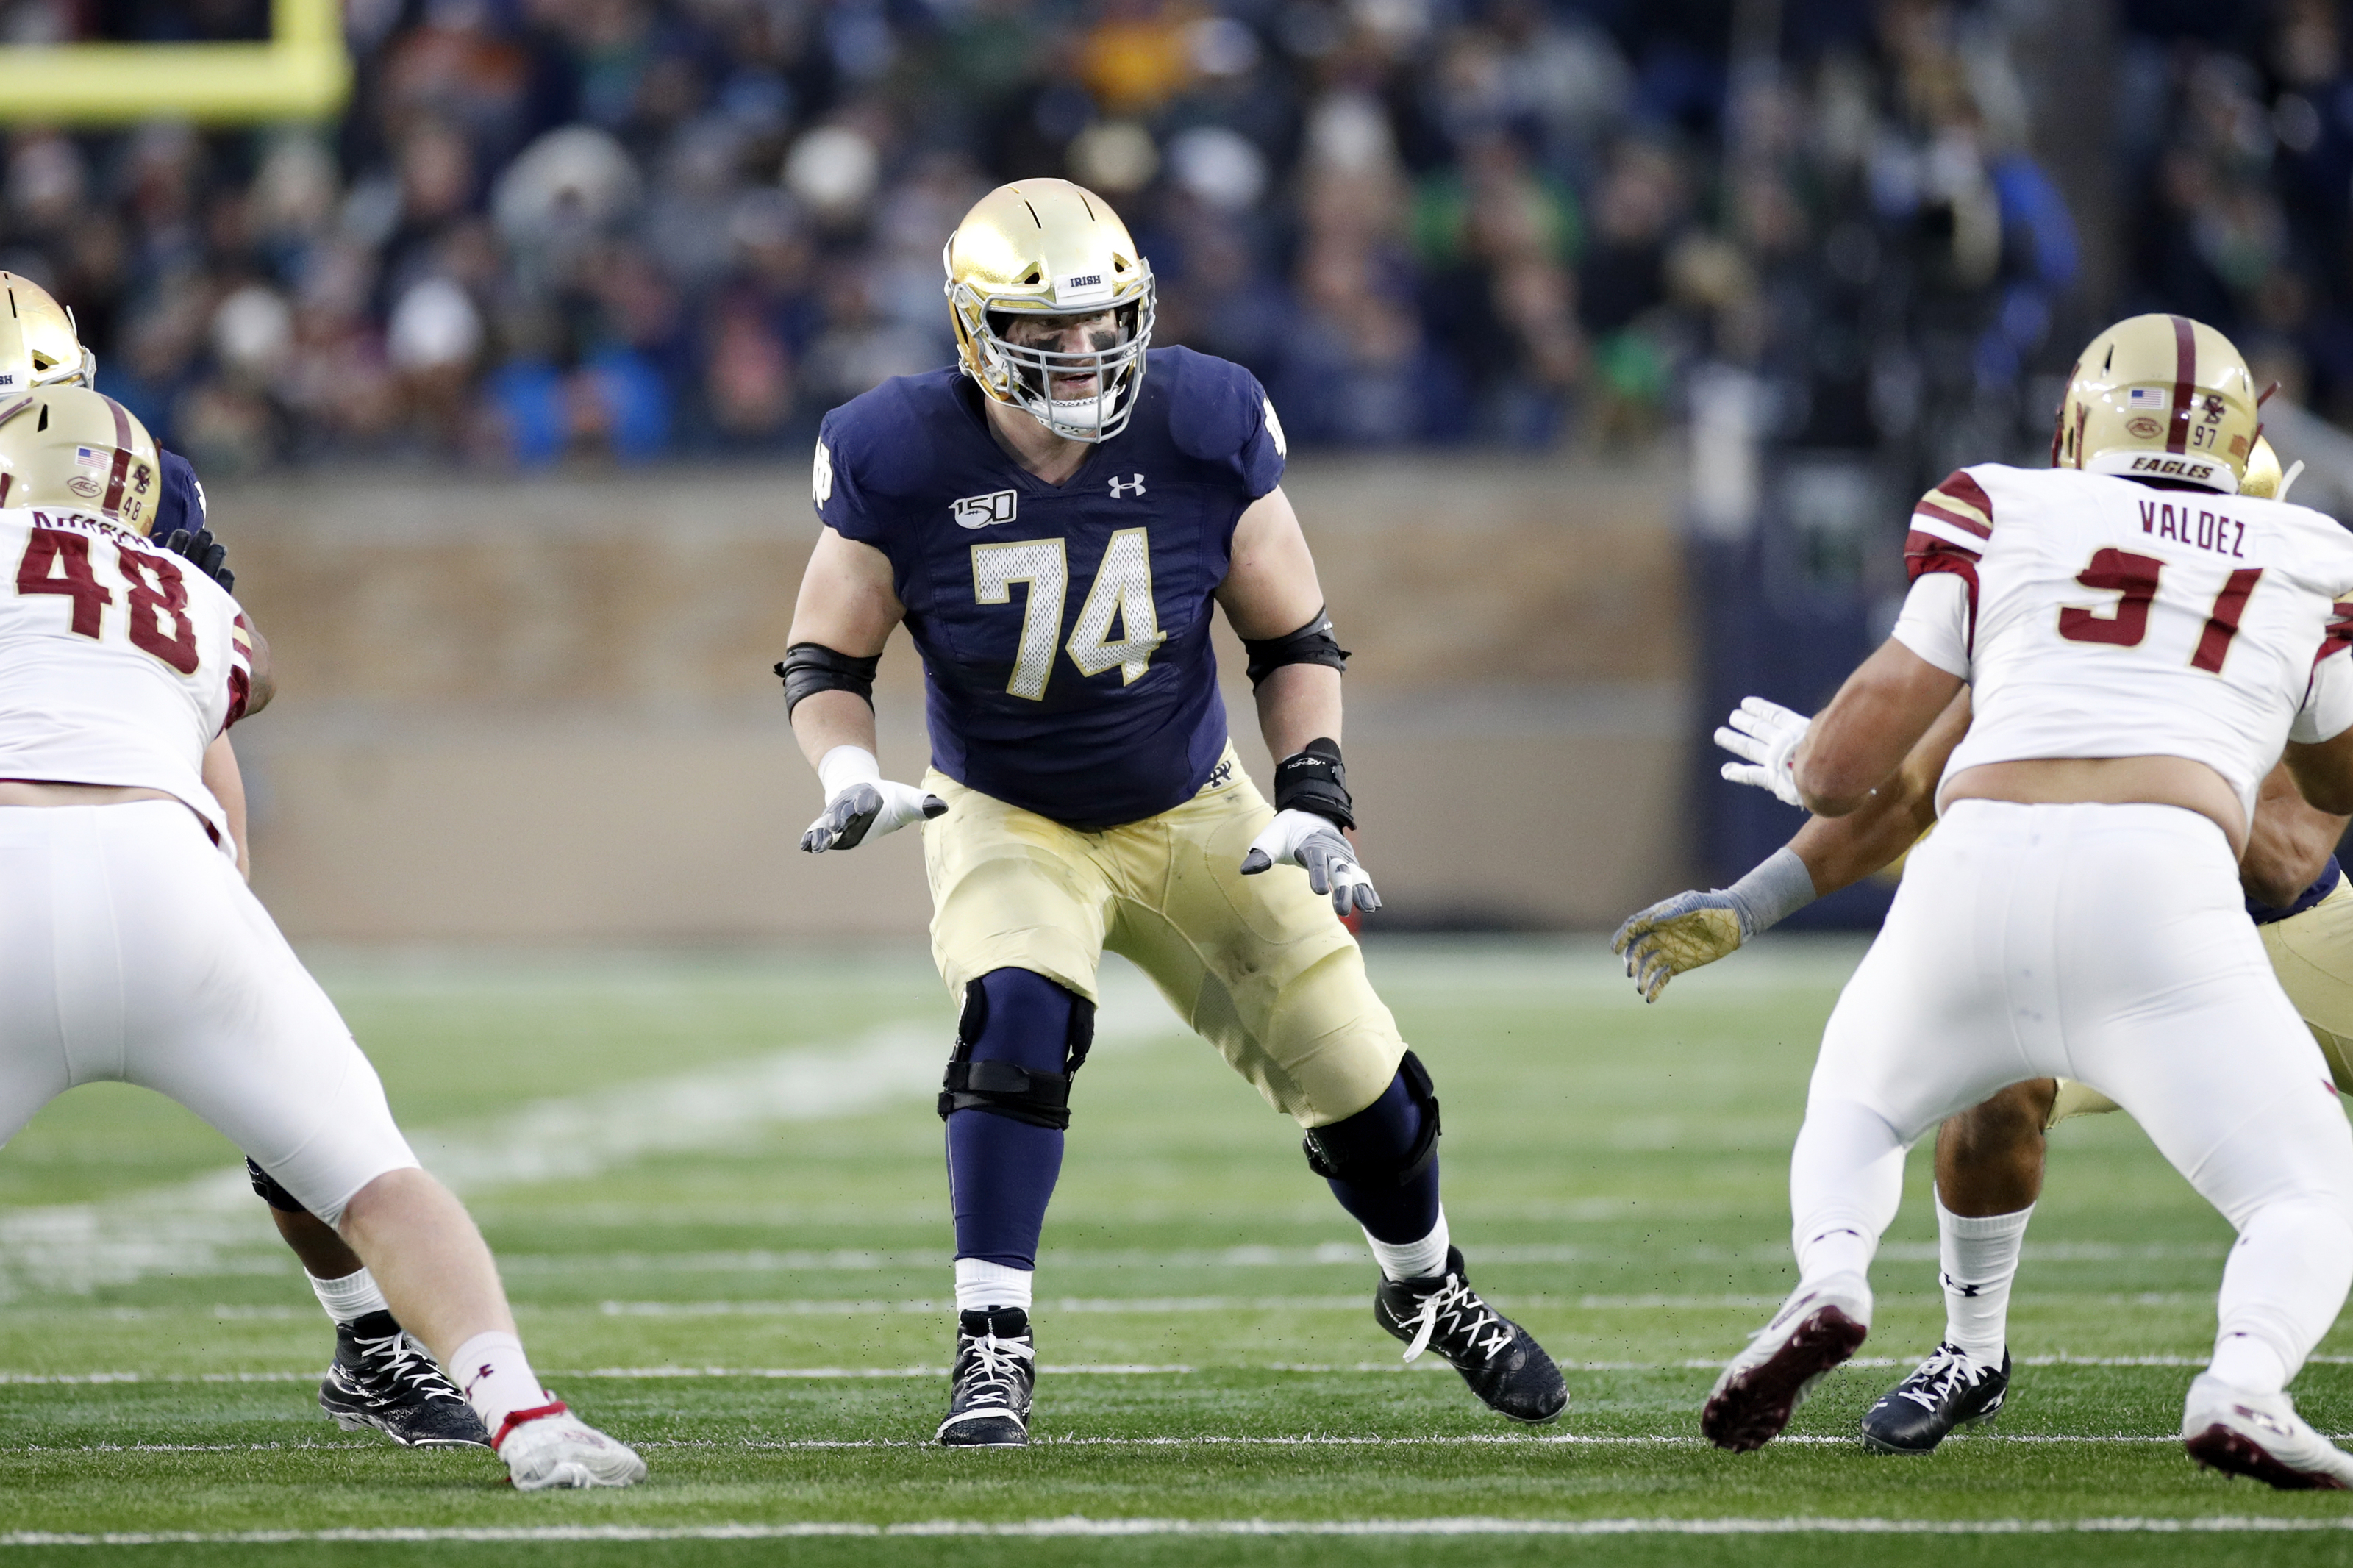 Should the Lions consider this promising offensive tackle in the draft?